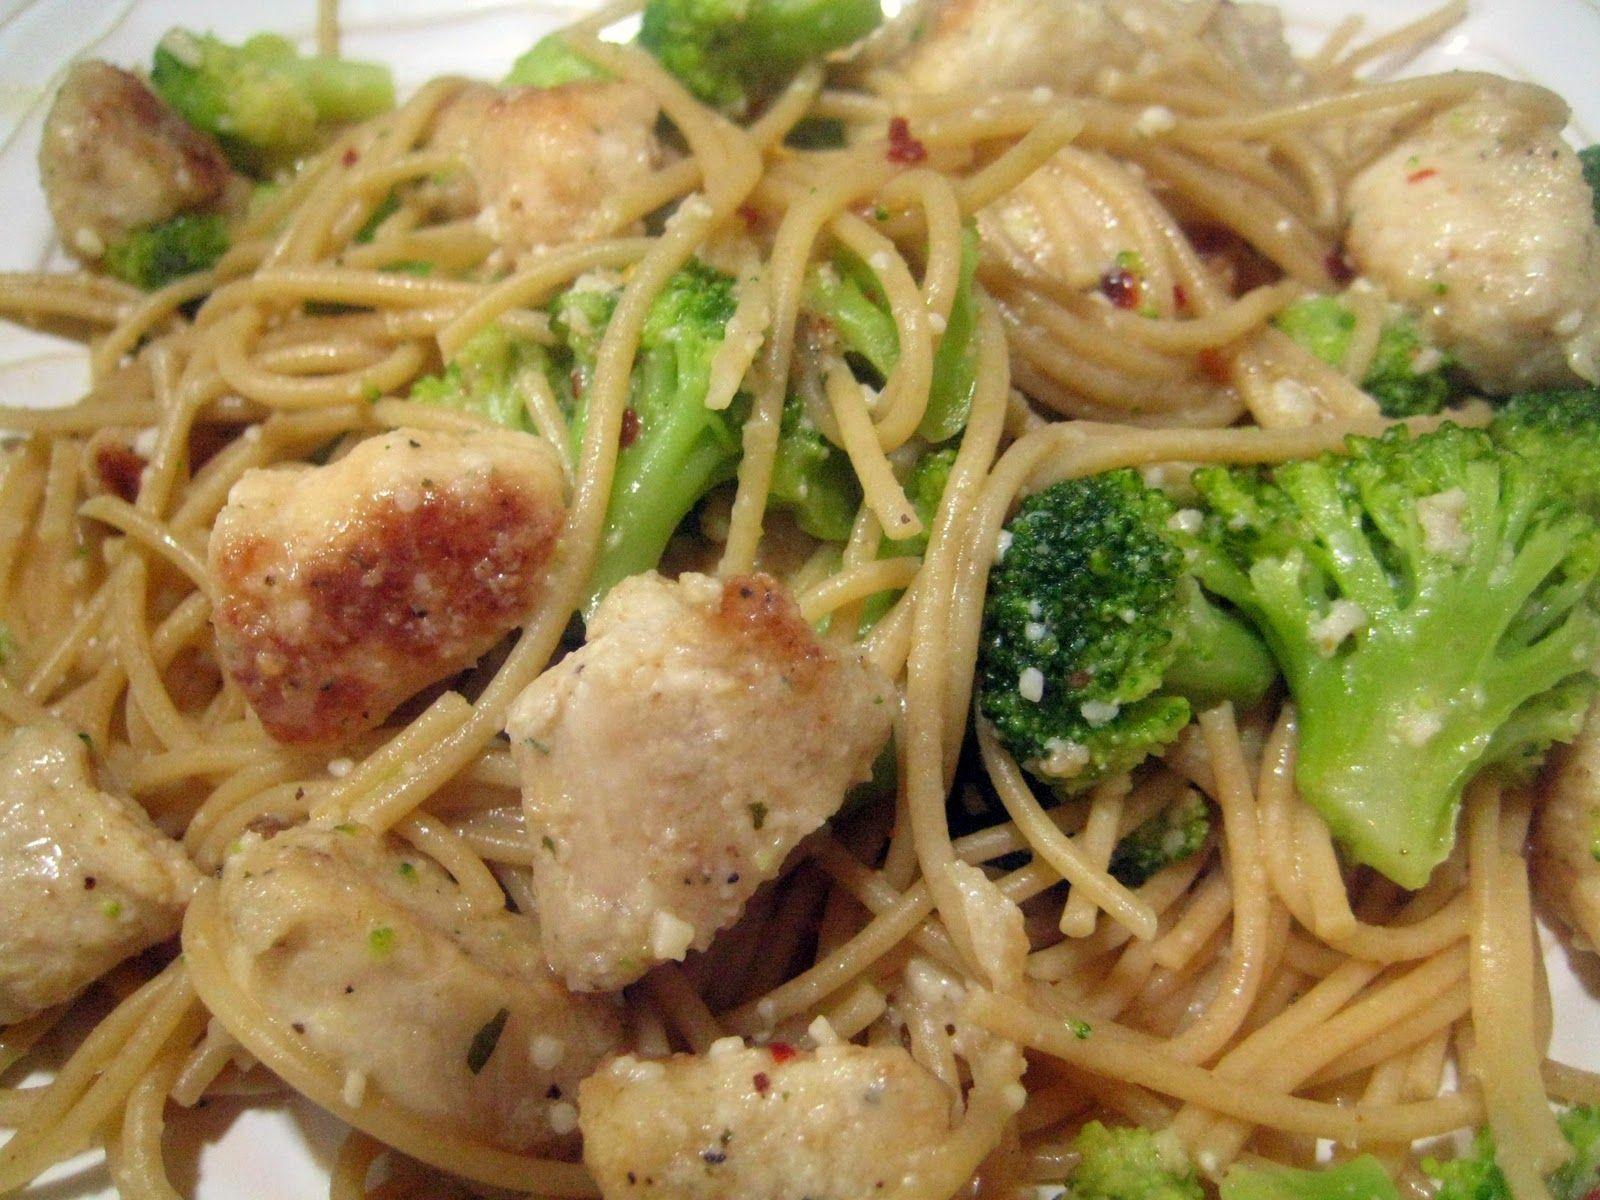 A bitchin kitchen chicken and broccoli pasta with white wine sauce a bitchin kitchen chicken and broccoli pasta with white wine sauce forumfinder Image collections